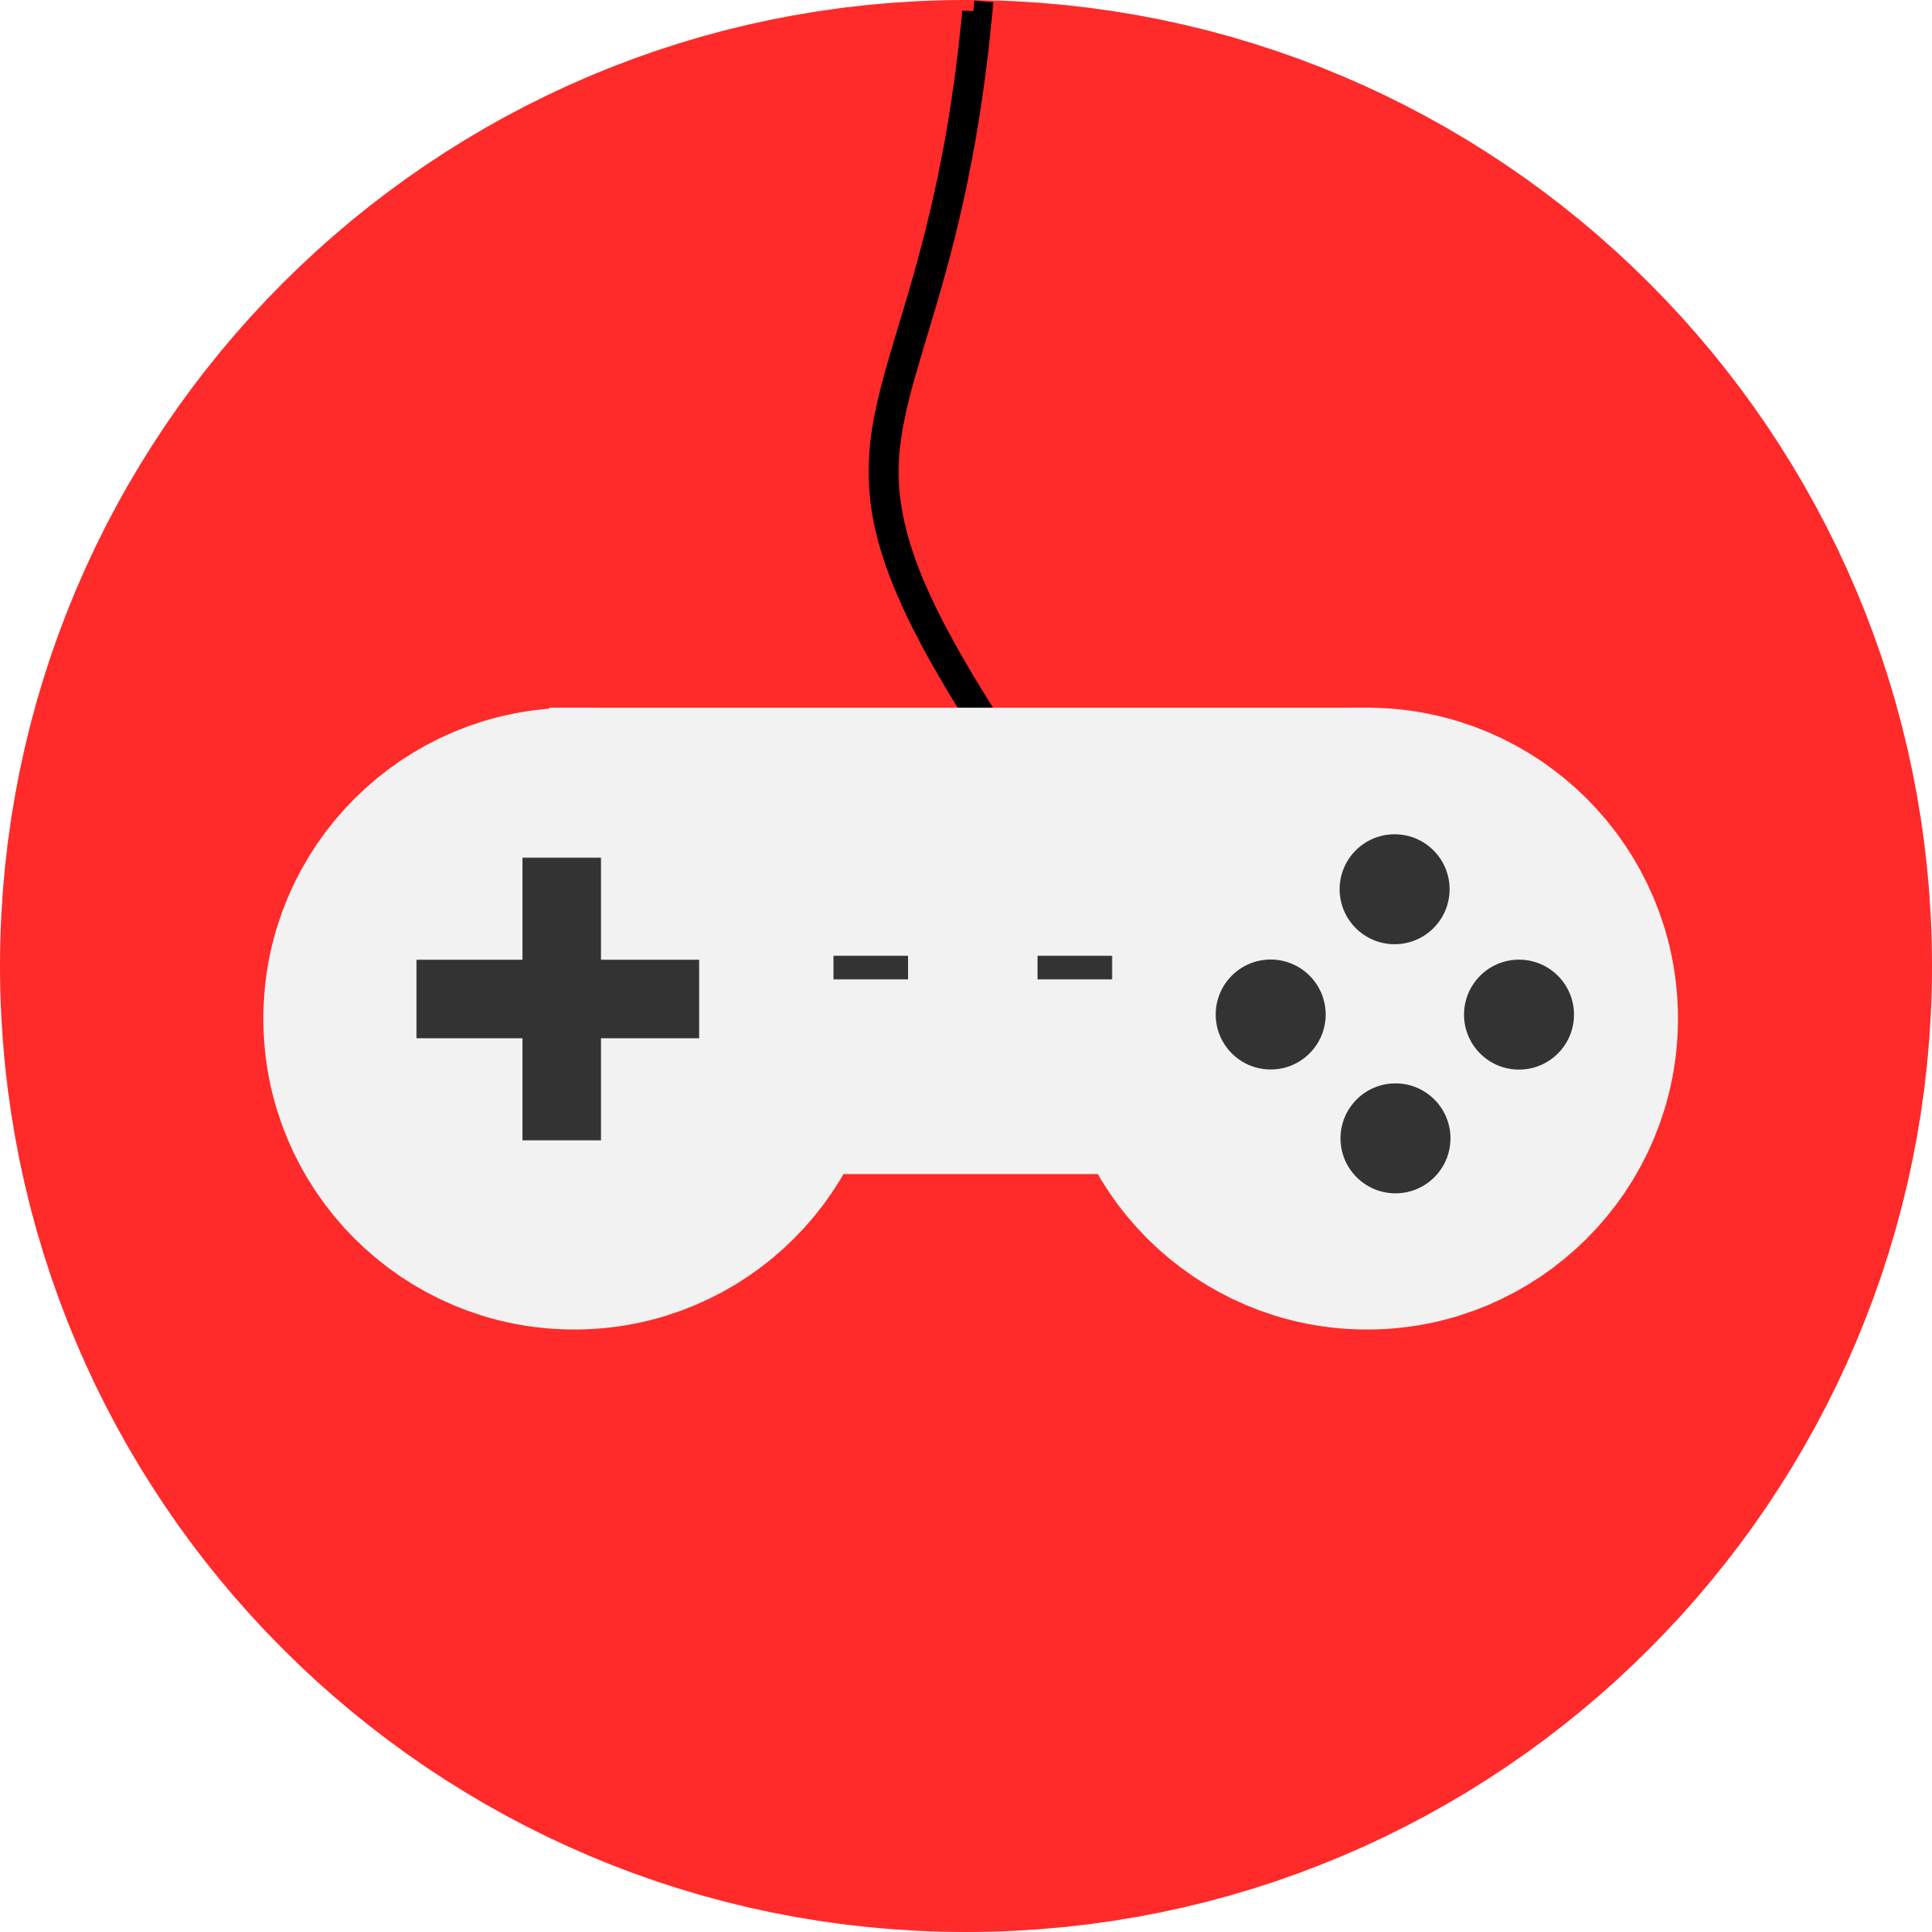 Game clipart video game controller. Icon big image png